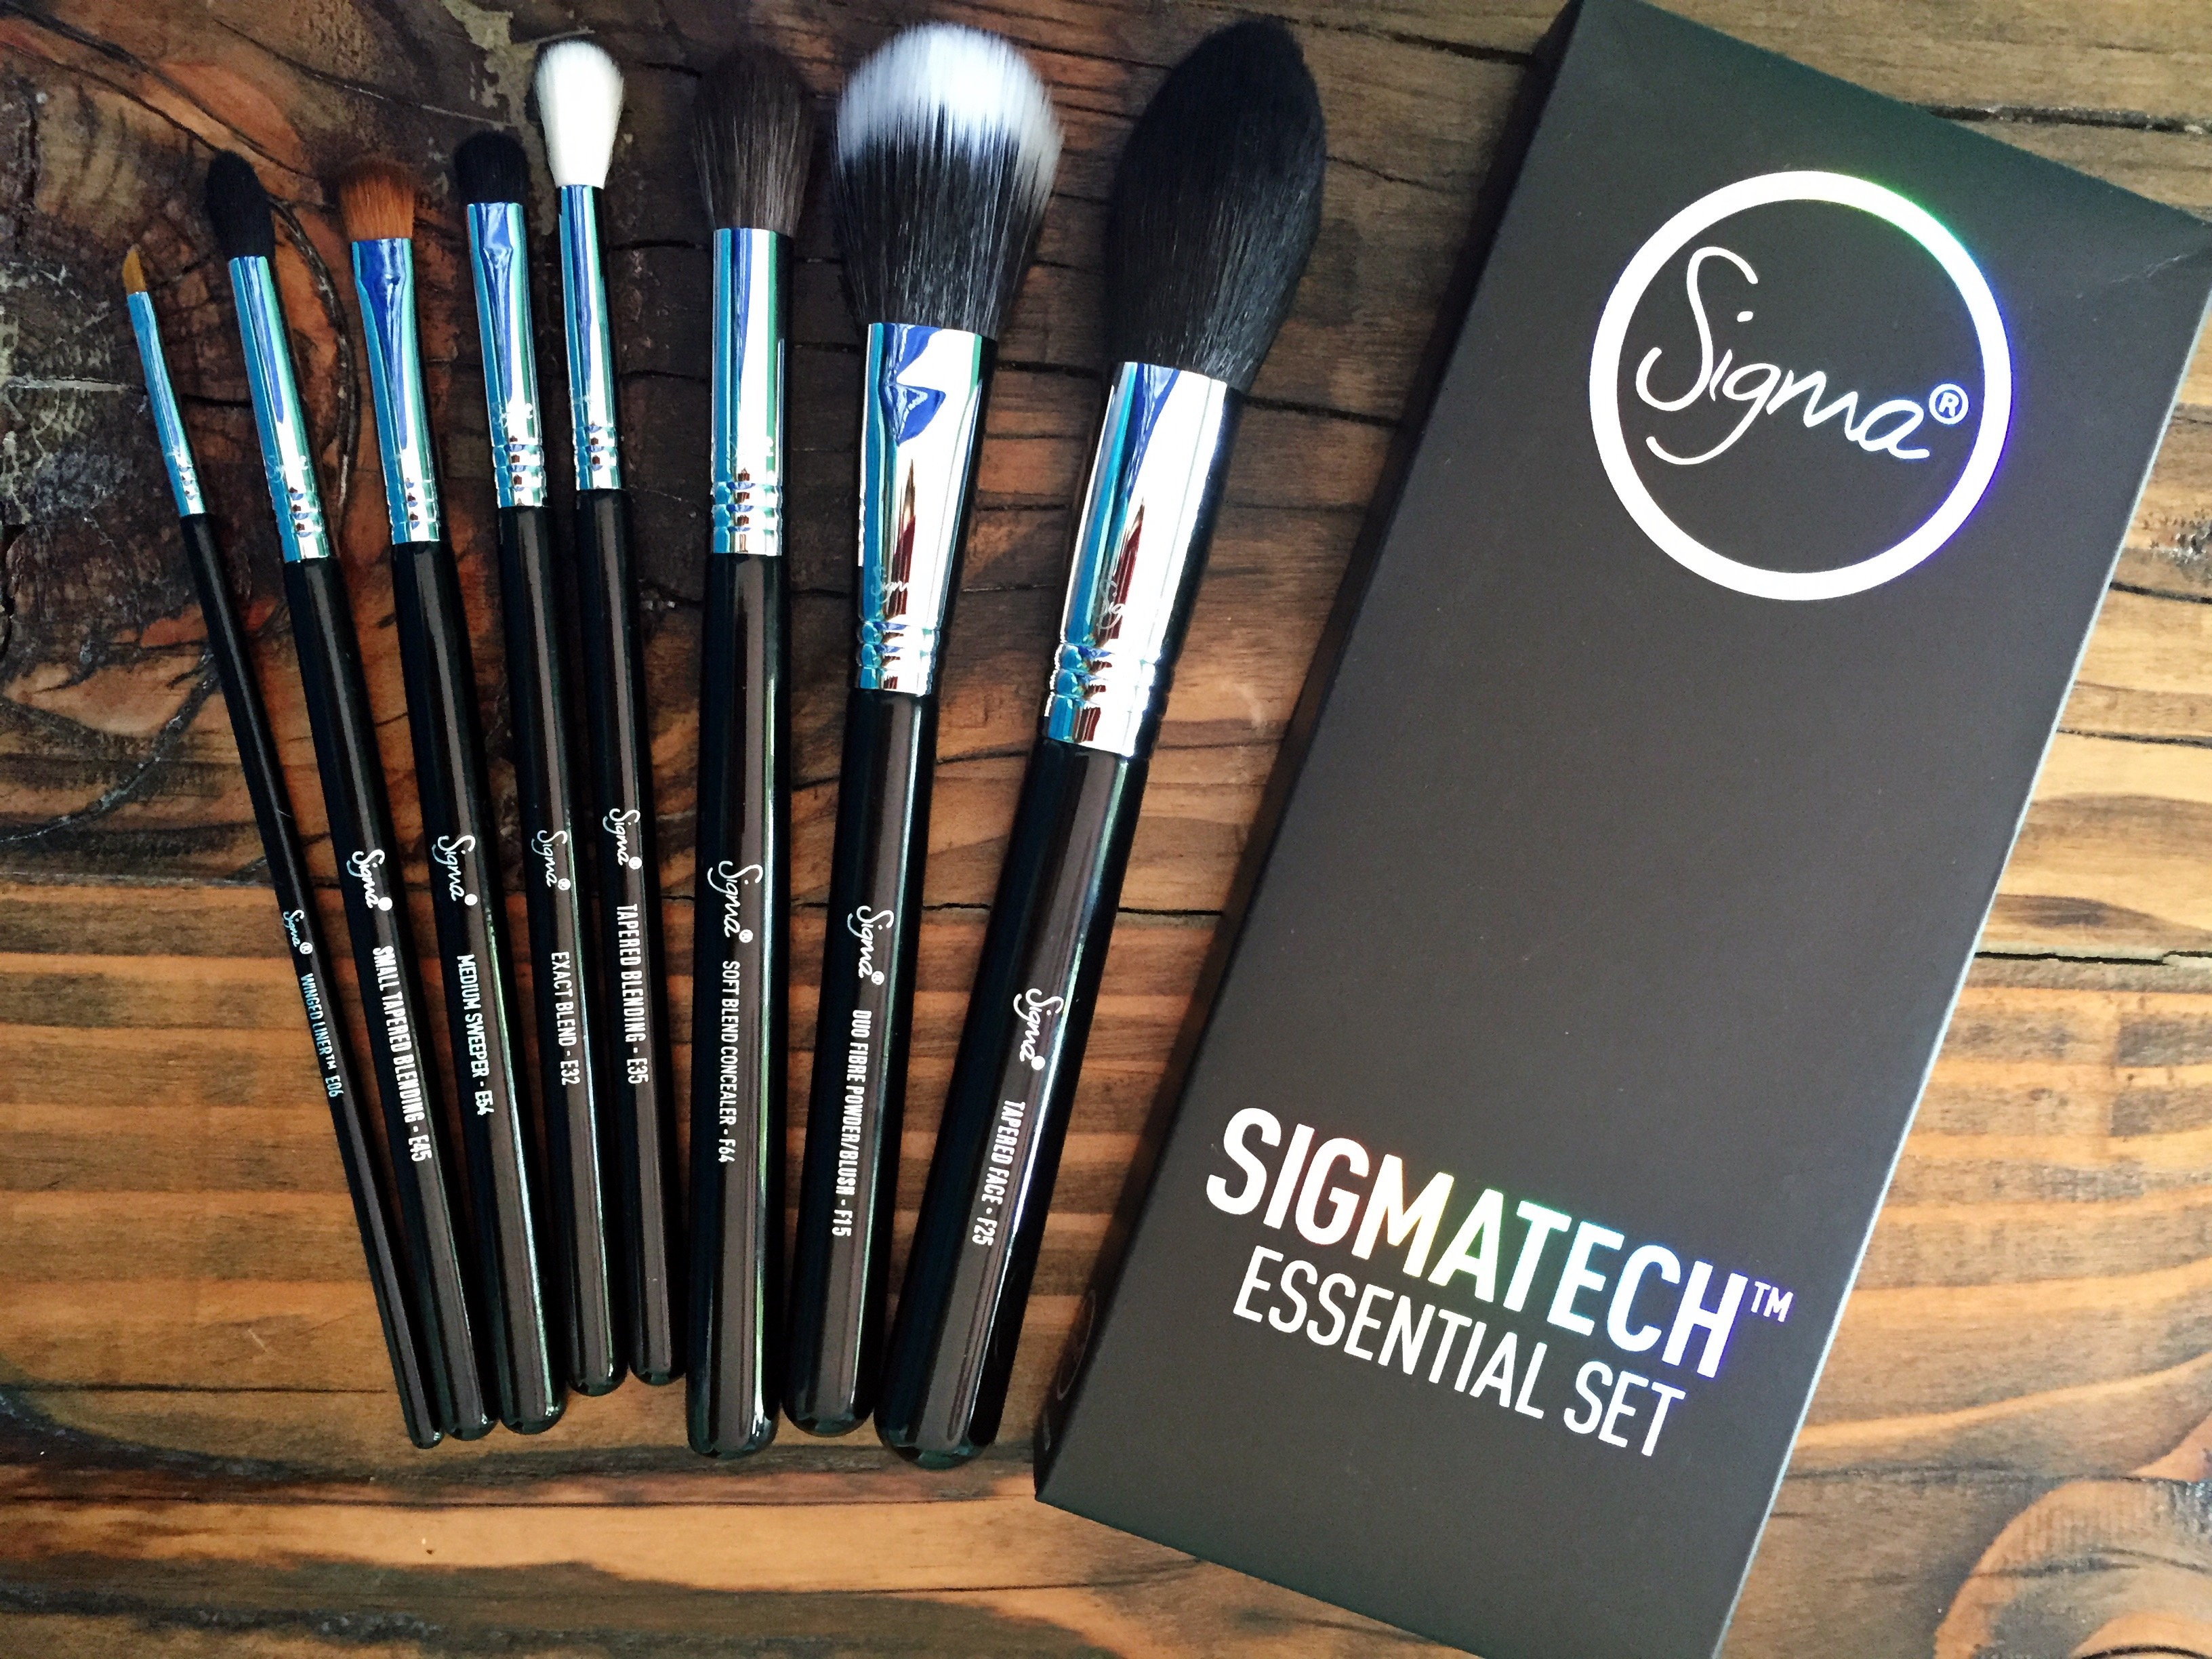 New Sigma Beauty SigmaTech Brushes – Essential Set *Cruelty